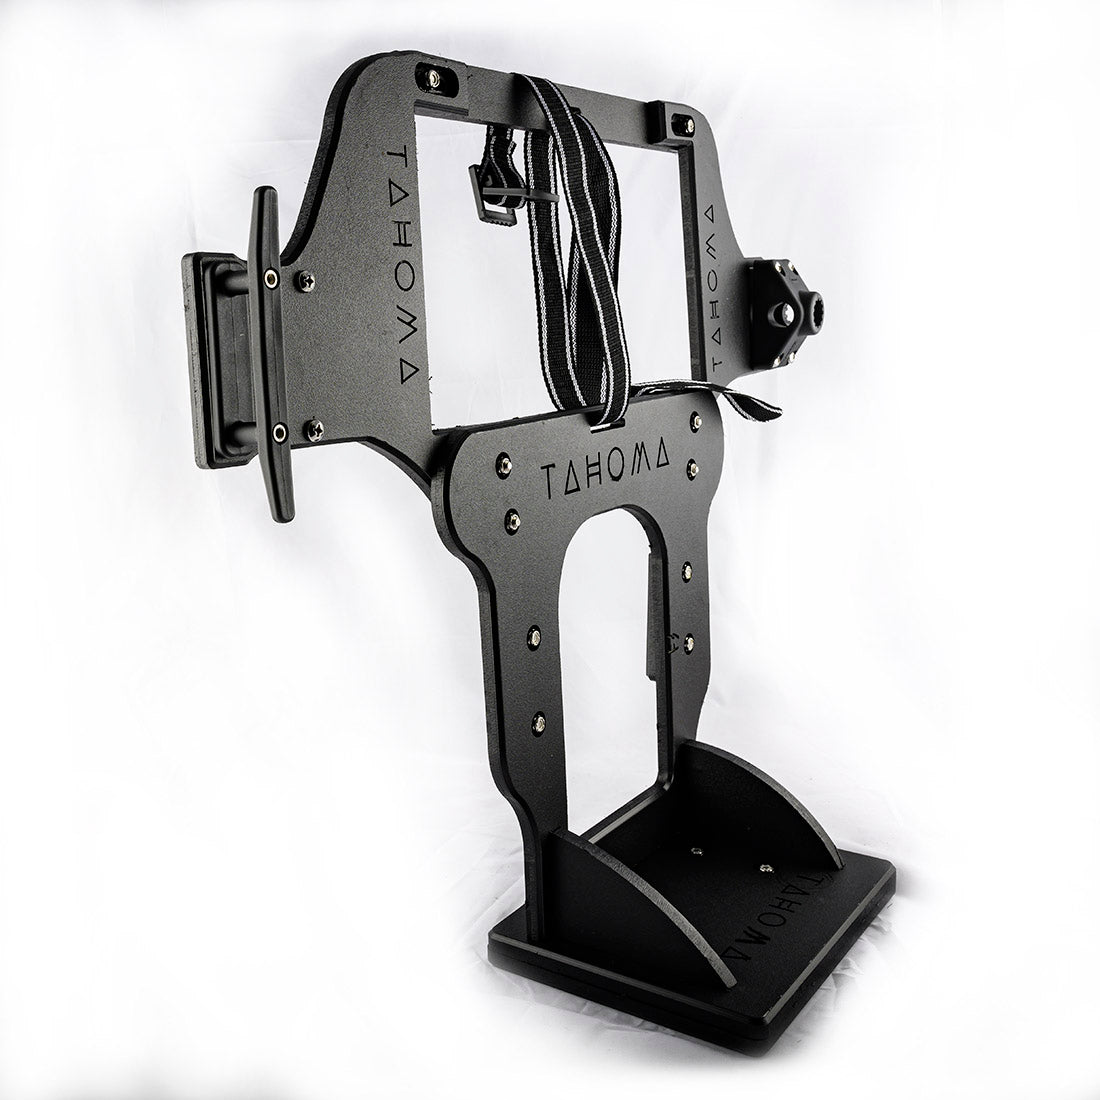 Trolling Motor Mount System for Tahoma Kayak All Around Standup Paddle Board Mounts 4theoutdoors Canada SUP outdoors